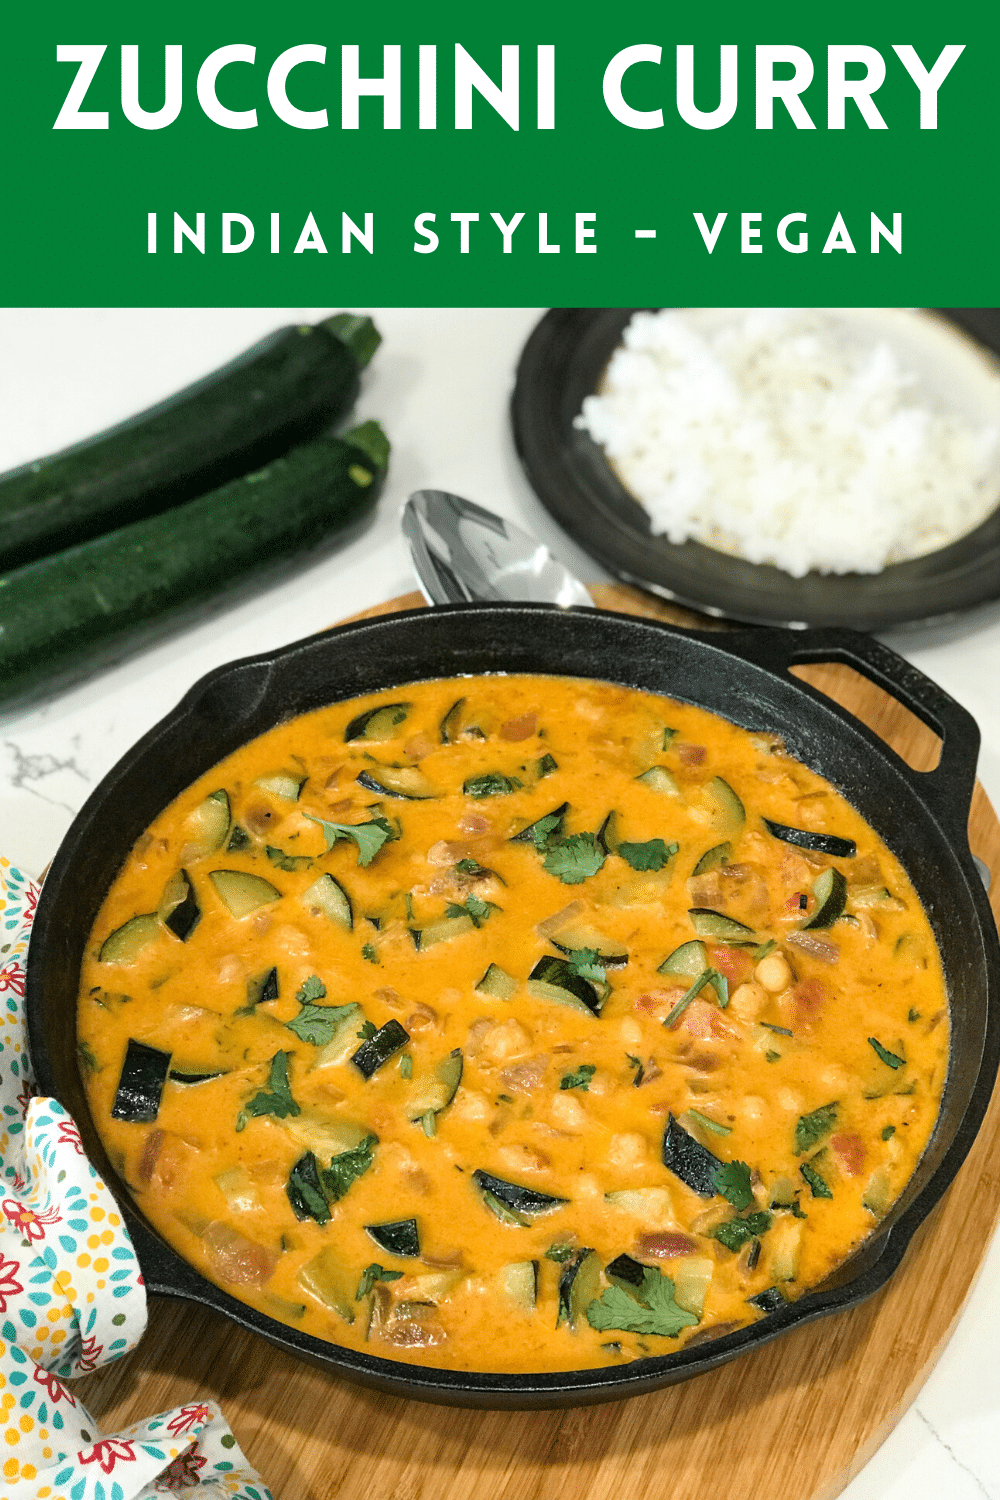 A cast iron pan with Zucchini Curry